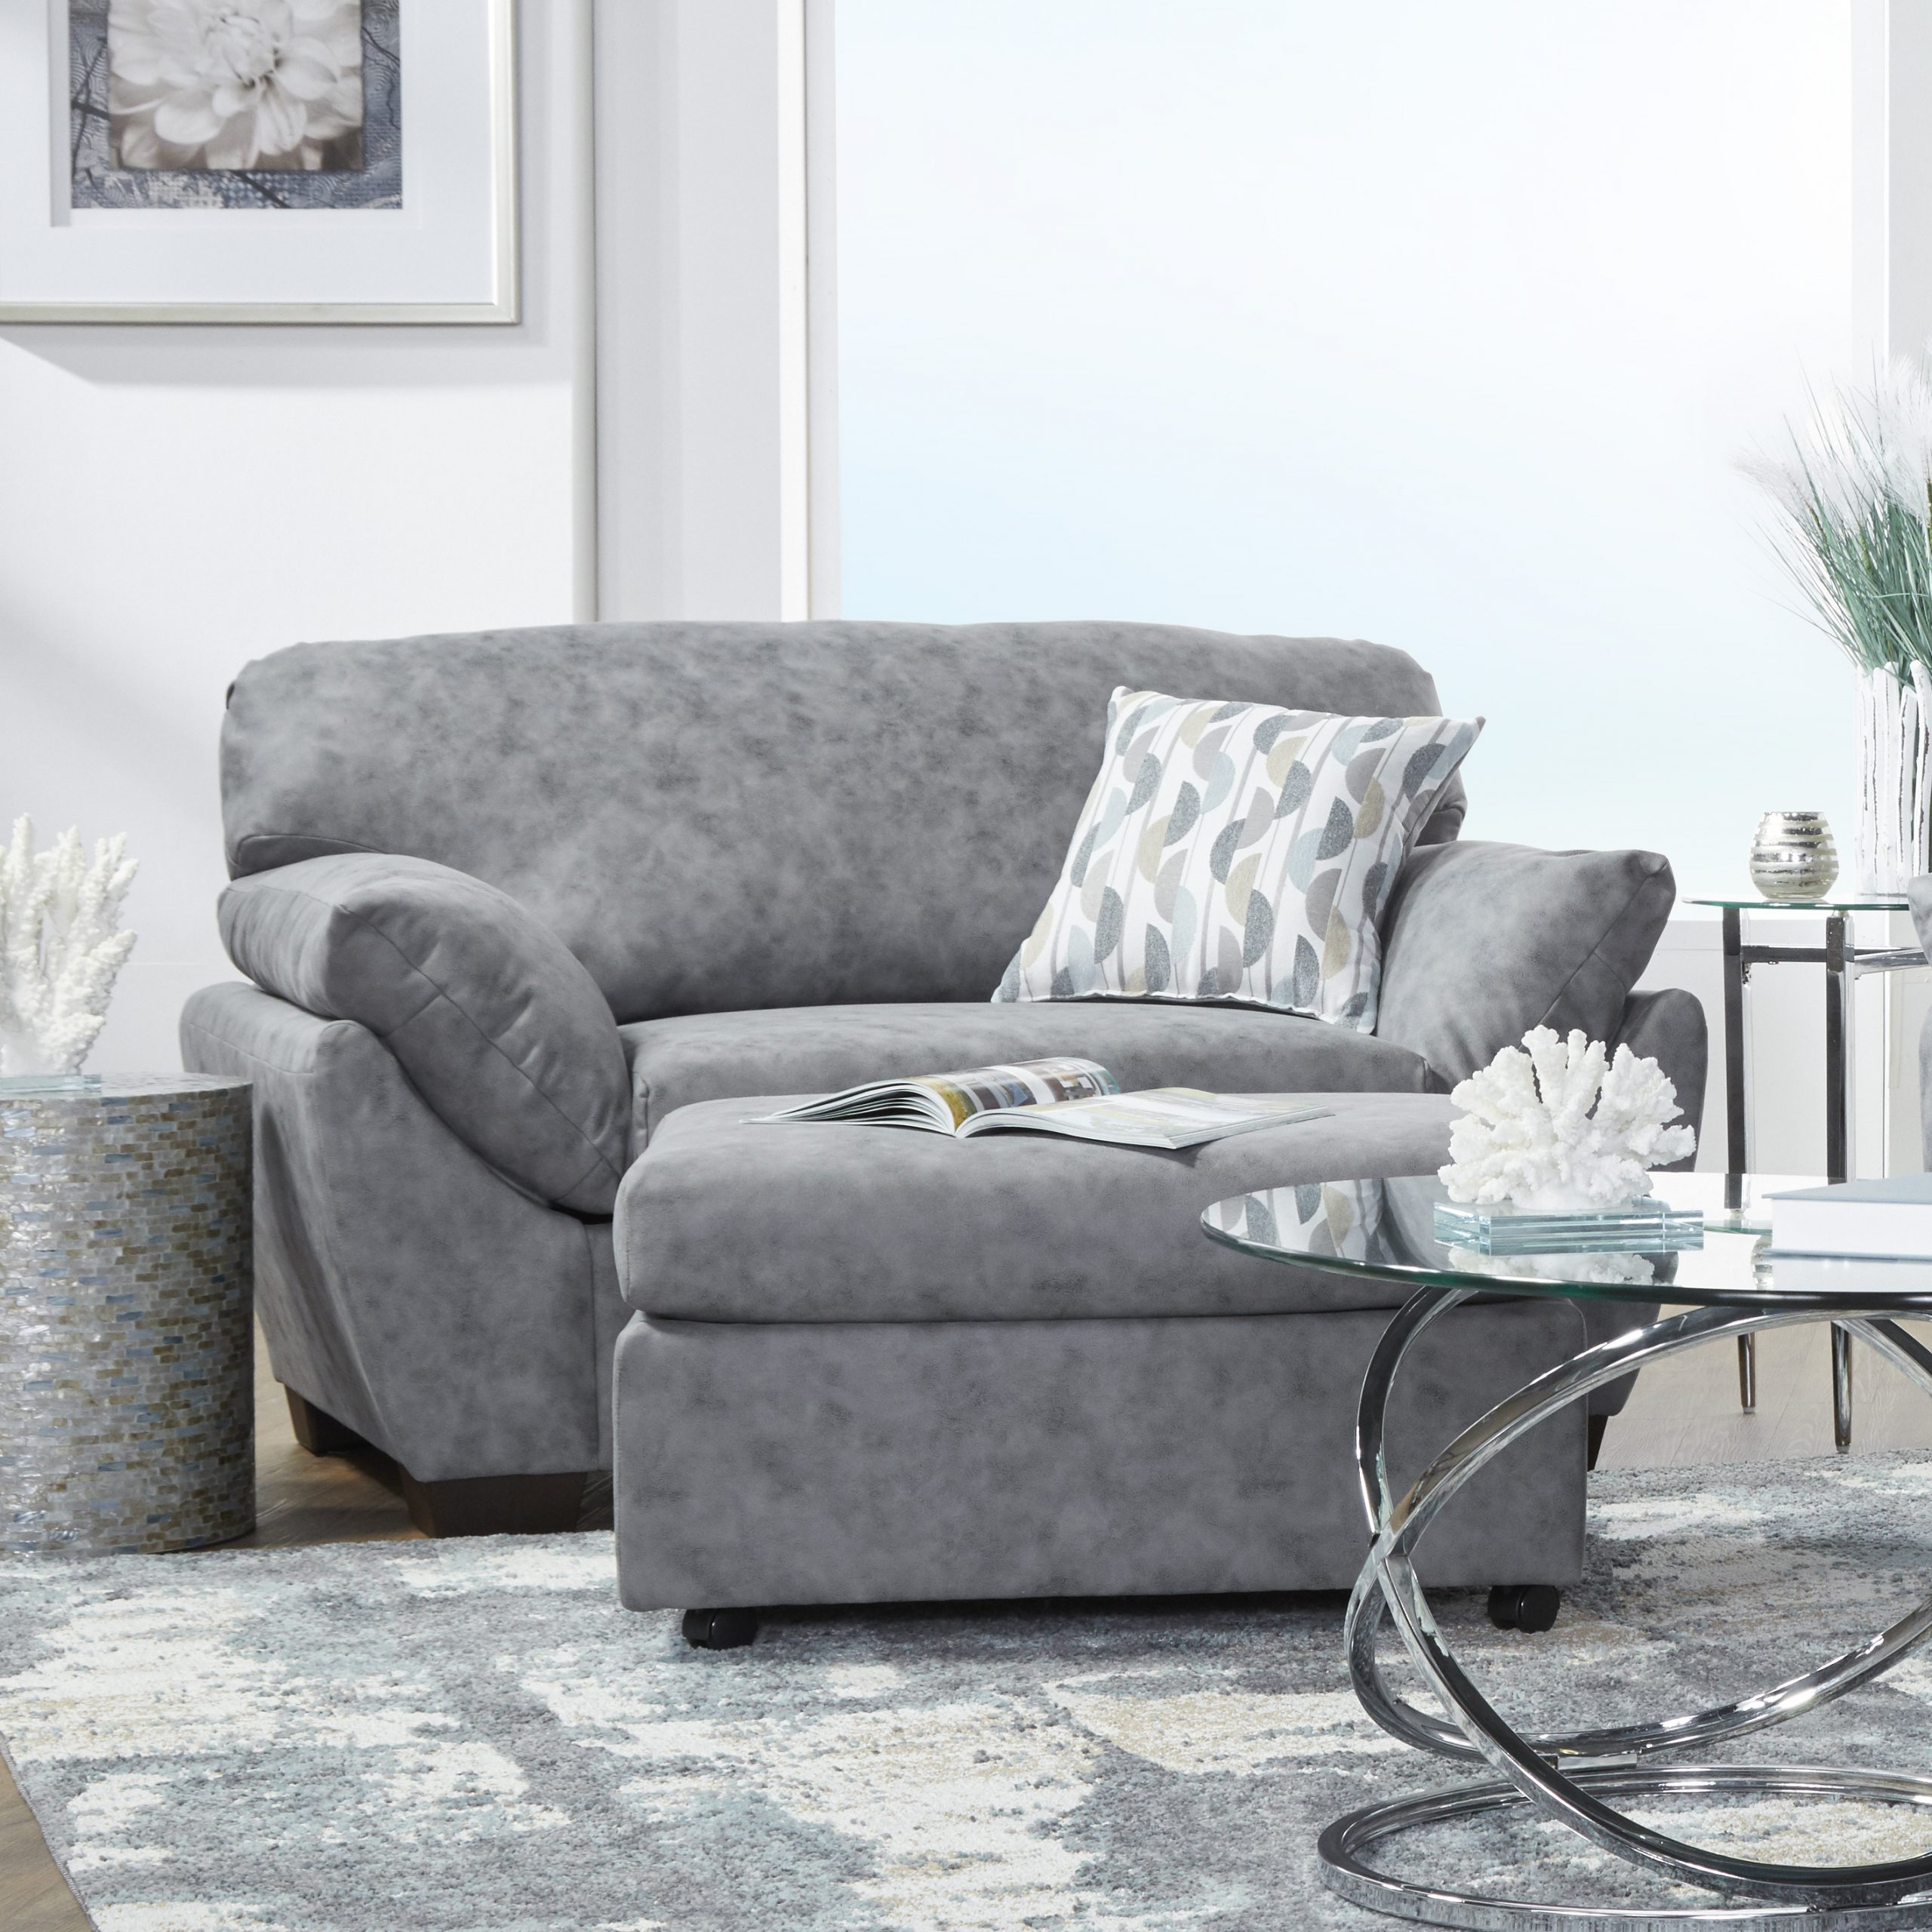 Lore Modern Fabric Pillow Arm Chair With Ottoman In Dolphin Bay Gray – Walmart Pertaining To Modern Armchairs And Ottoman (View 14 of 15)